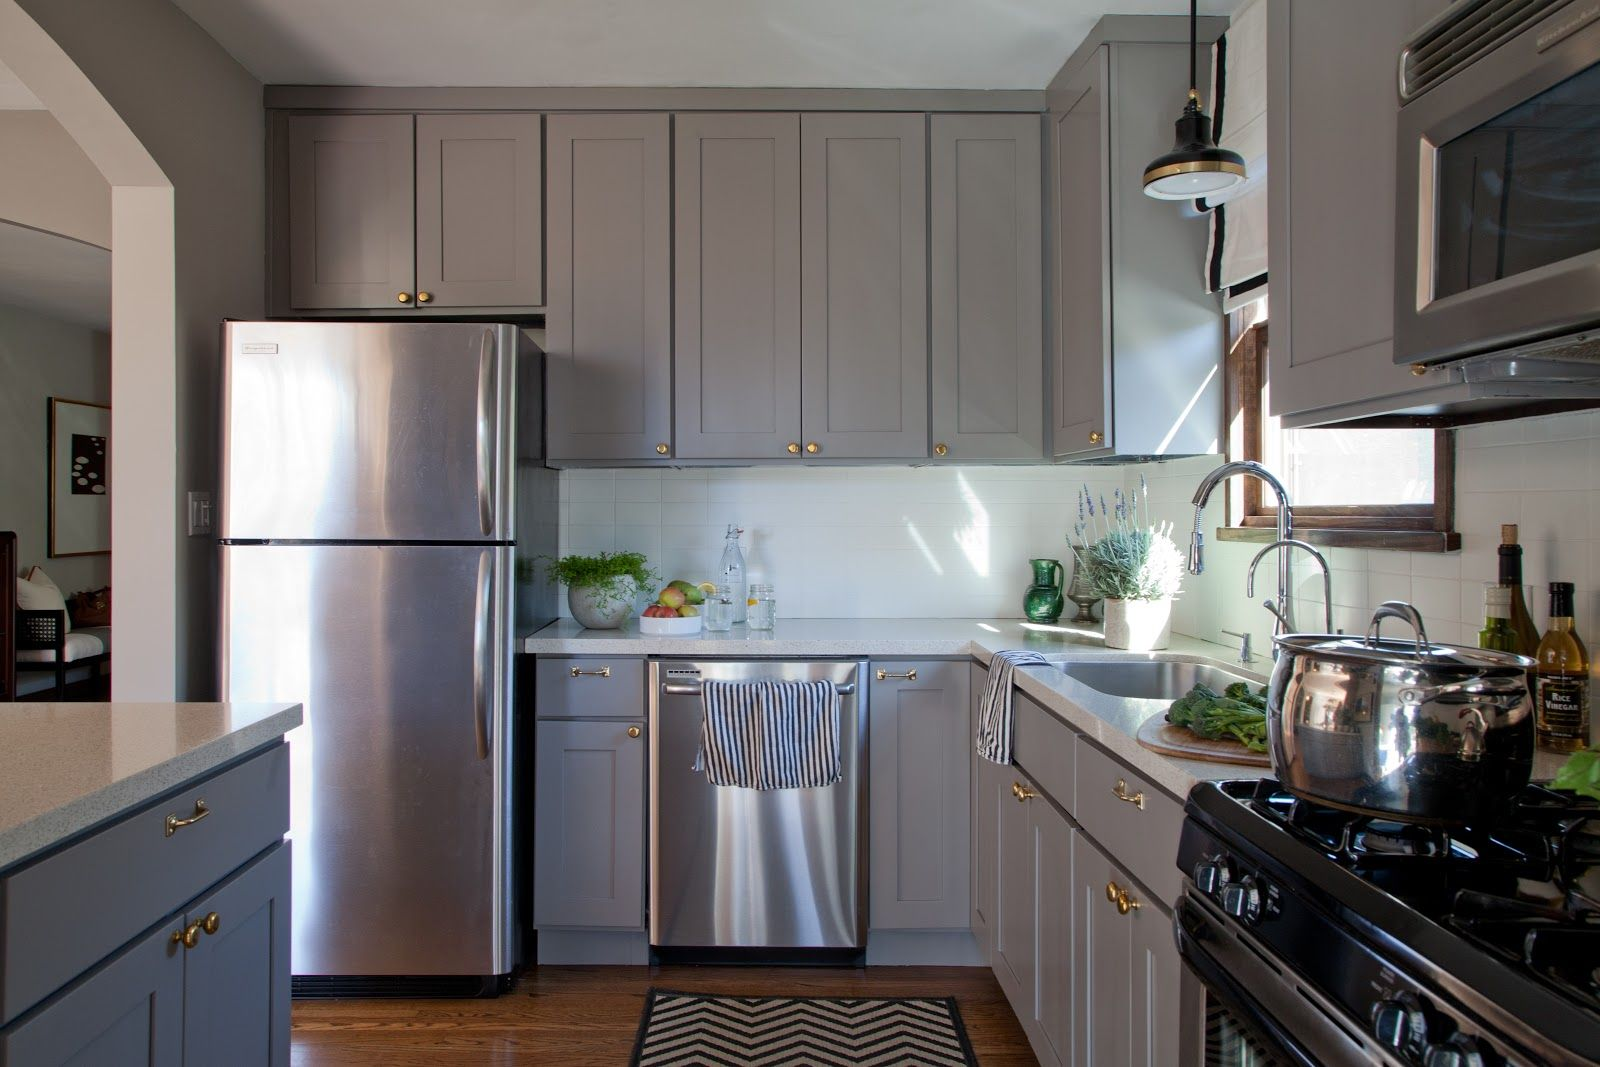 Kitchens With Gray Floors Mixing Metals I Want To Do My Kitchen Cabnets Gray The Countertop